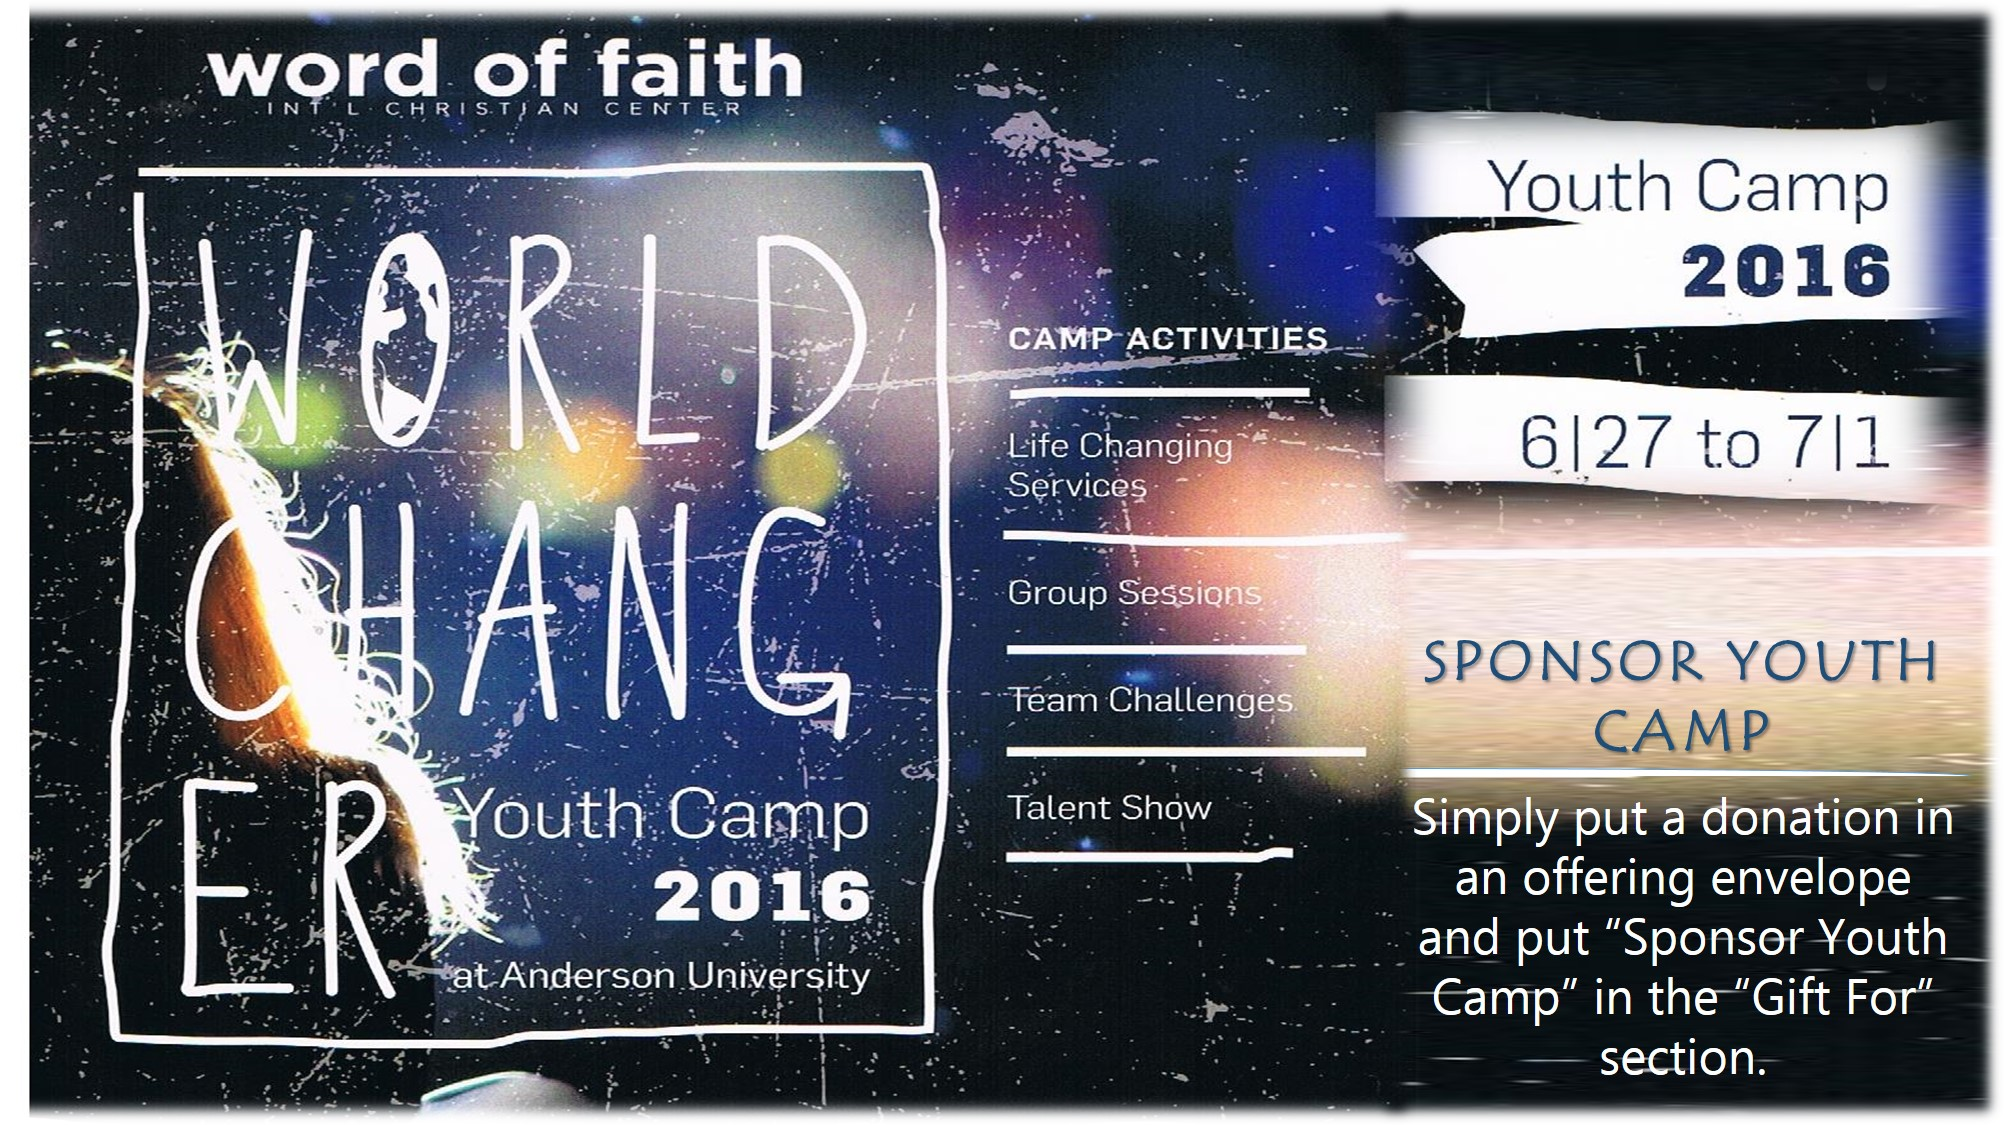 Youth Camp 2016 - June 27 - July 1